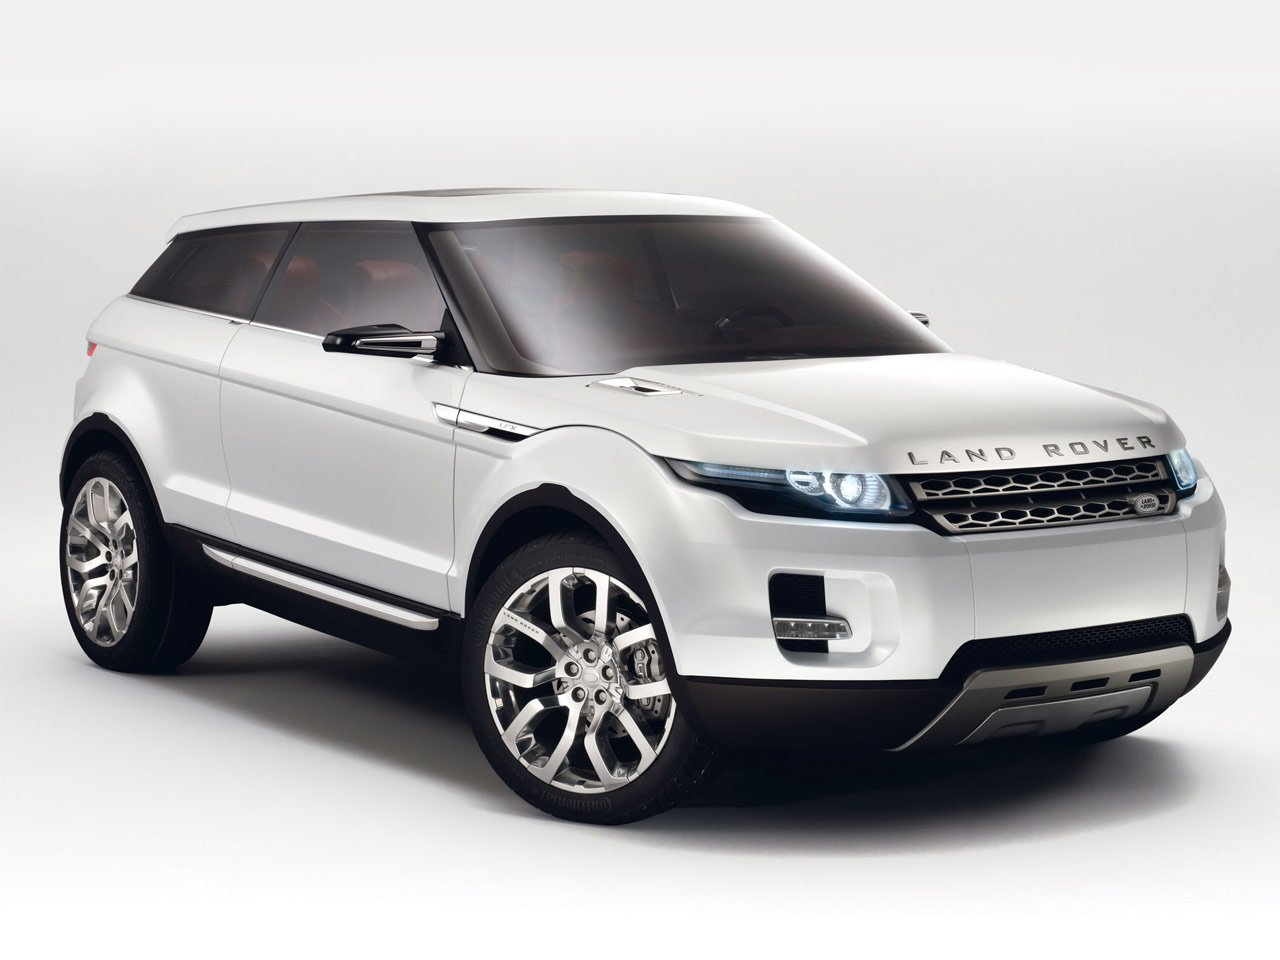 Latest 2011 Land Rover Range Rover Evoque Review Car News And Show Free Download